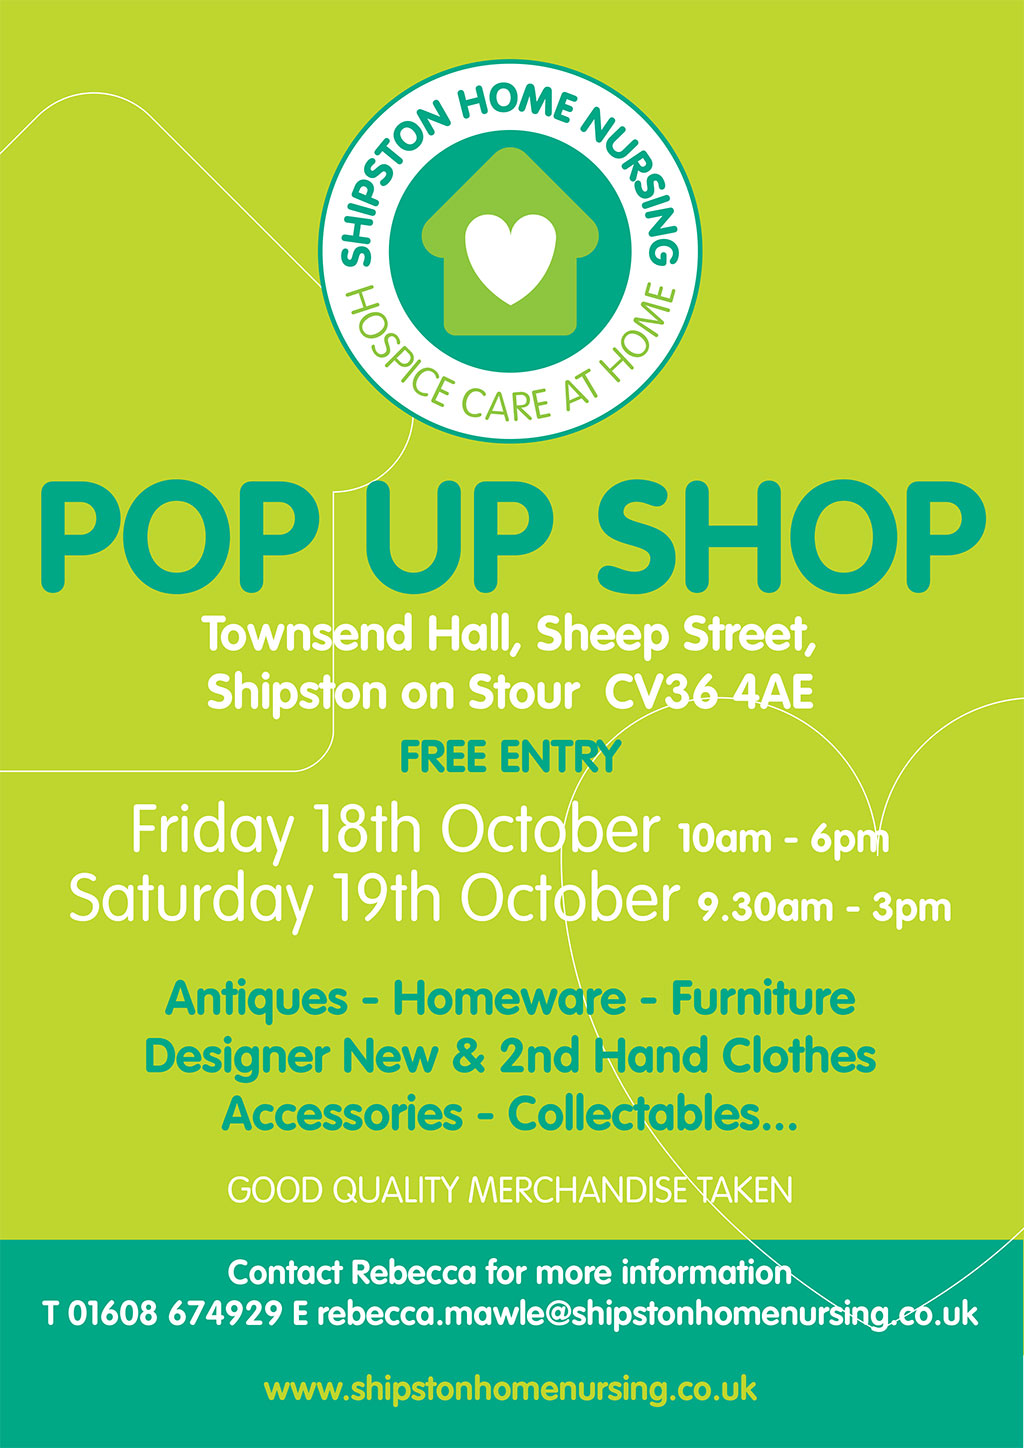 Shipston Home Nursing Pop up Shop